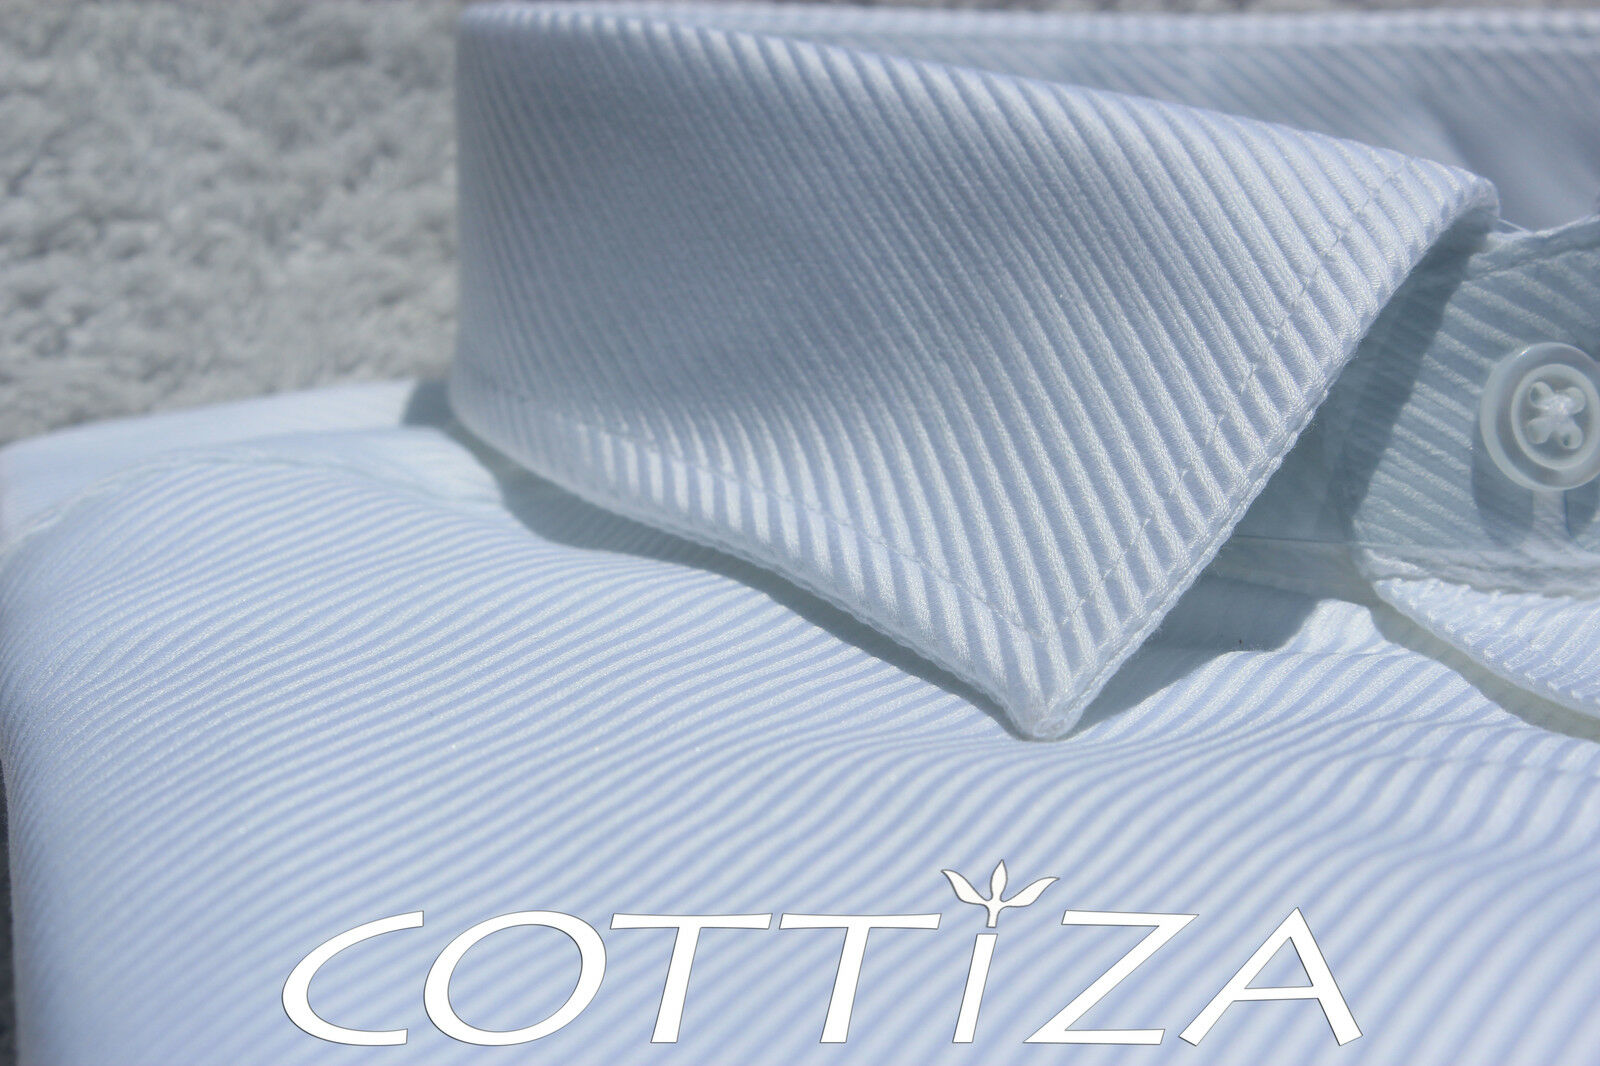 COTTIZA - 2 Ply 100% Egyptian Cotton  Herren Geschäft Formal Dress Shirt